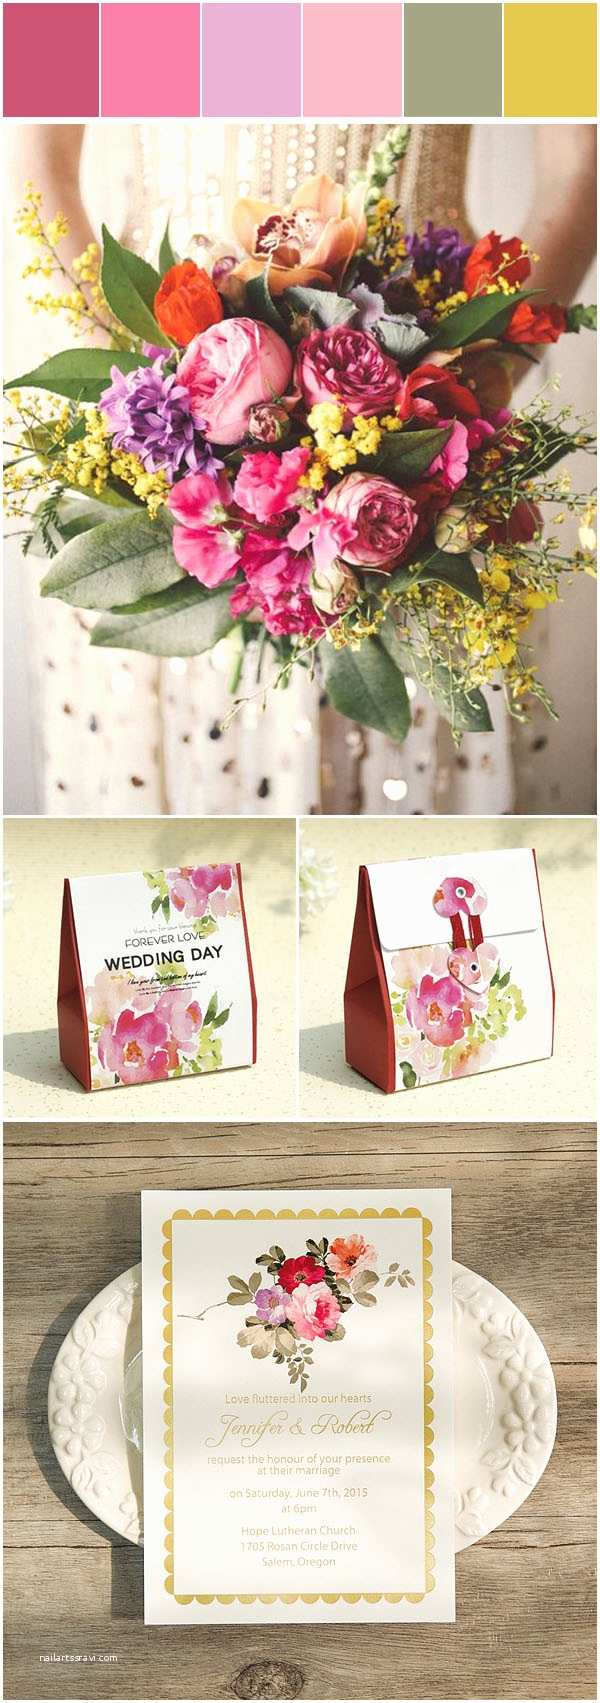 Colorful Wedding Invitations Five Pretty Summer Wedding Colors In Shade Gold with